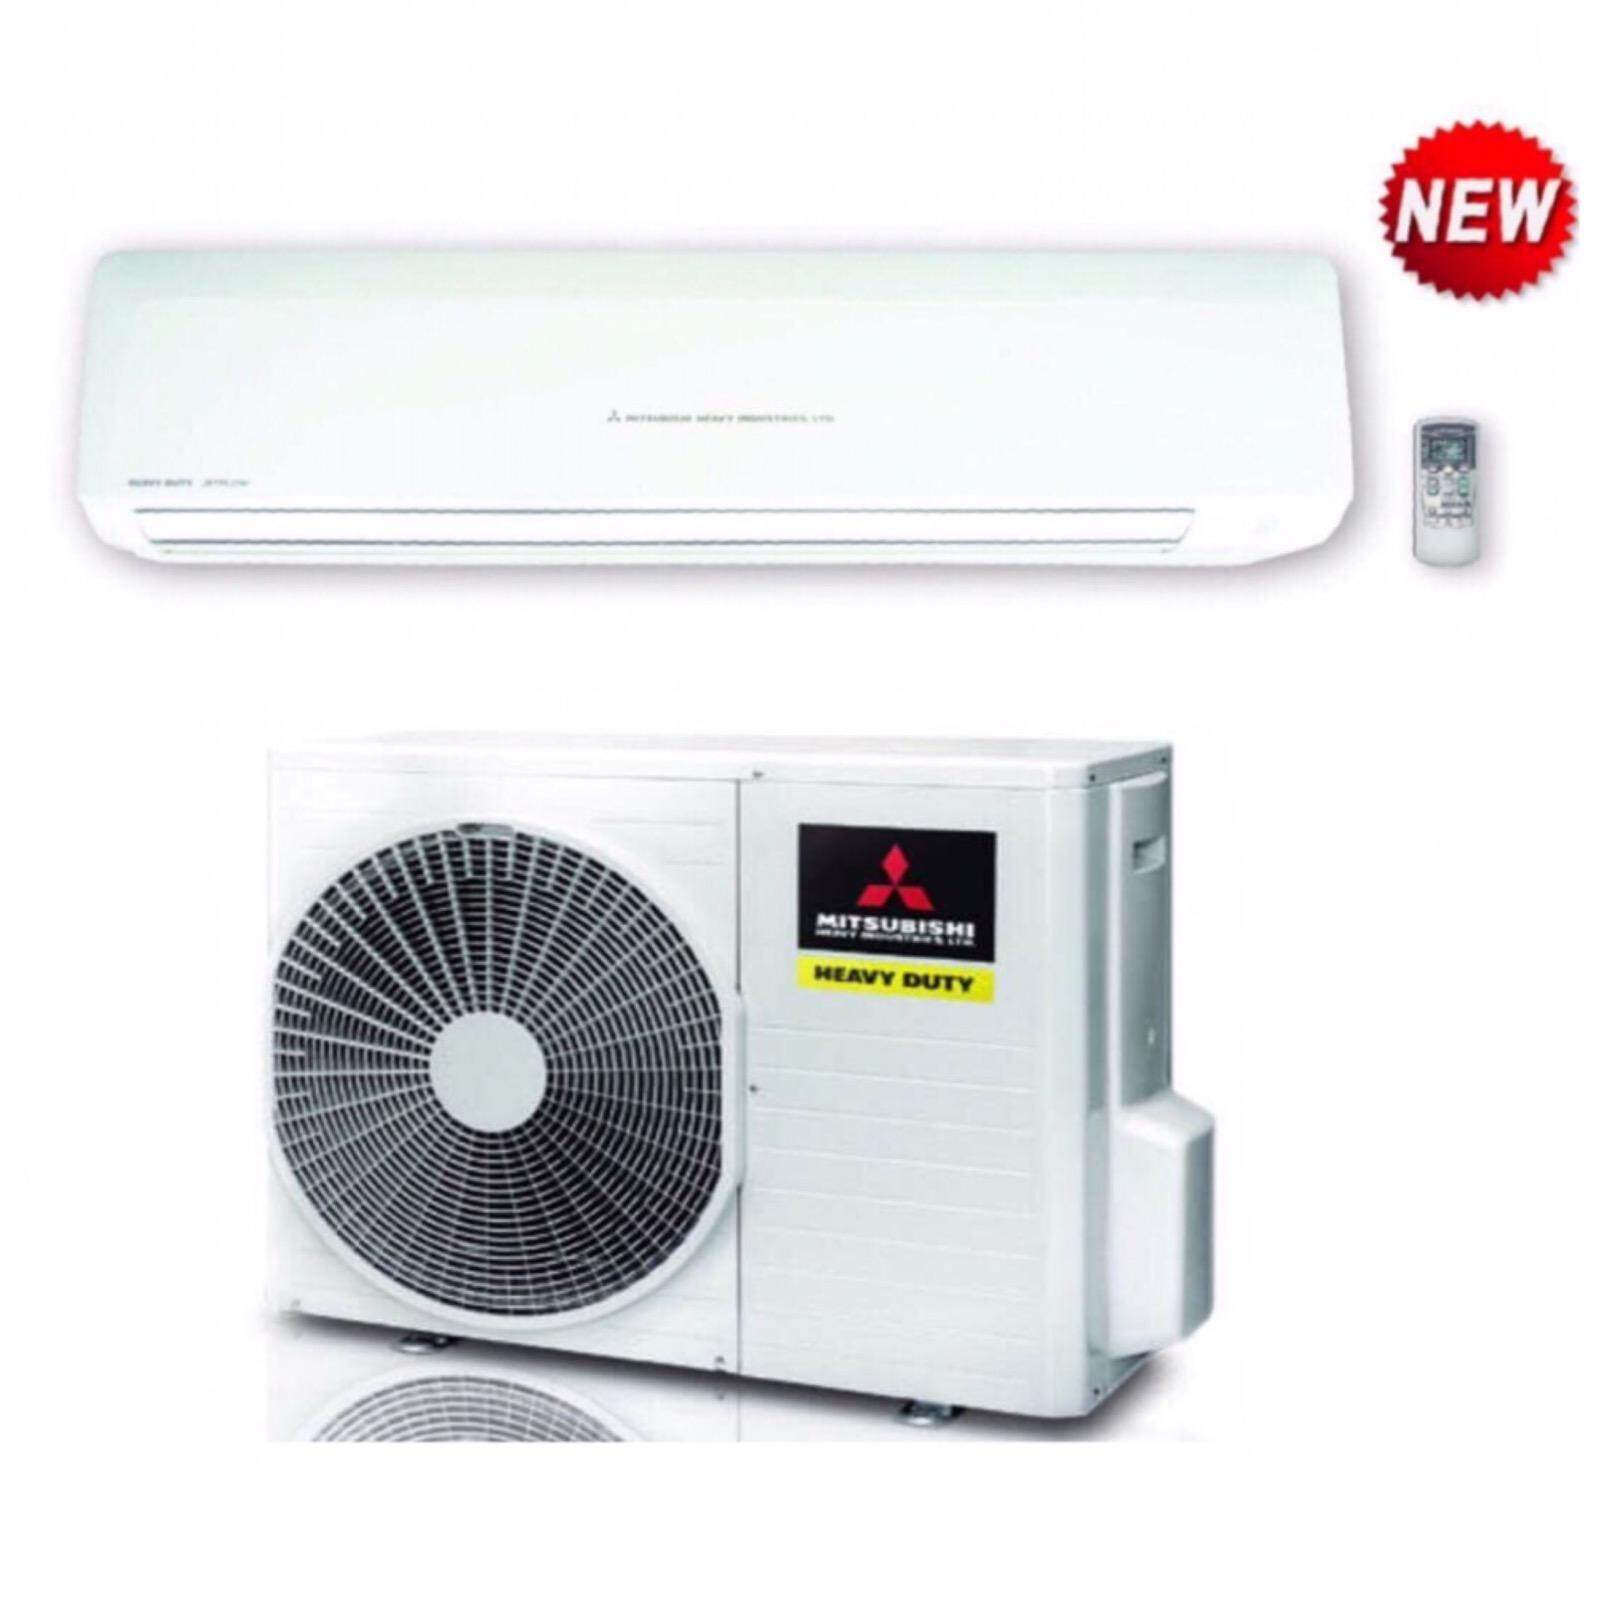 Mitsubishi 2 5hp R410a Deluxe Air Conditioner Srk25css